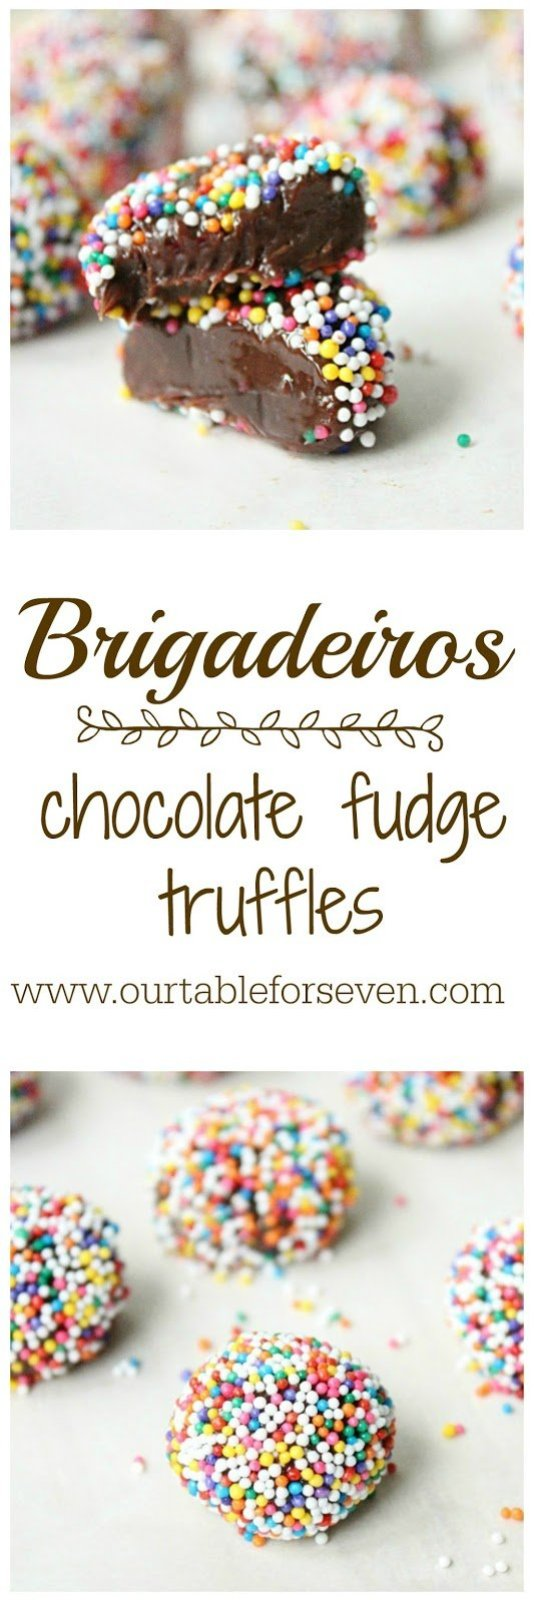 Brigadeiros (Chocolate Fudge Truffles) from Table for Seven: Gooey and chocolaty! No baking required for this addicting little candies and all you need is just 4 ingredients!